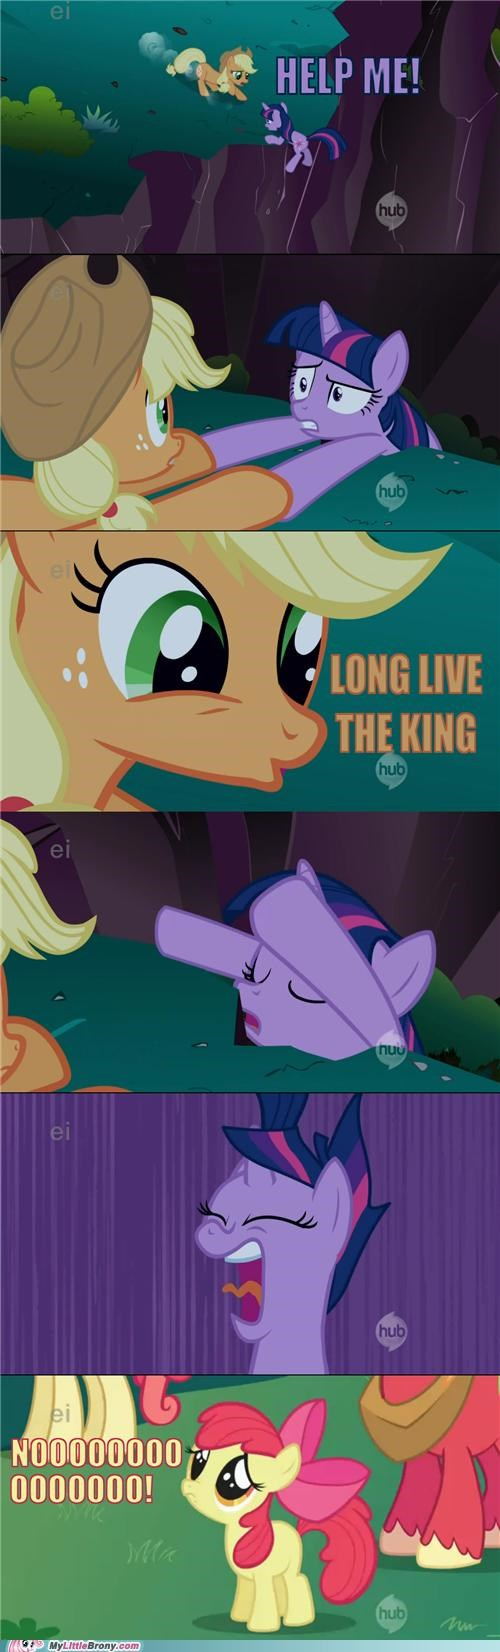 applejack,best of week,comic,comics,help me,lion king,Sad,twilight sparkle